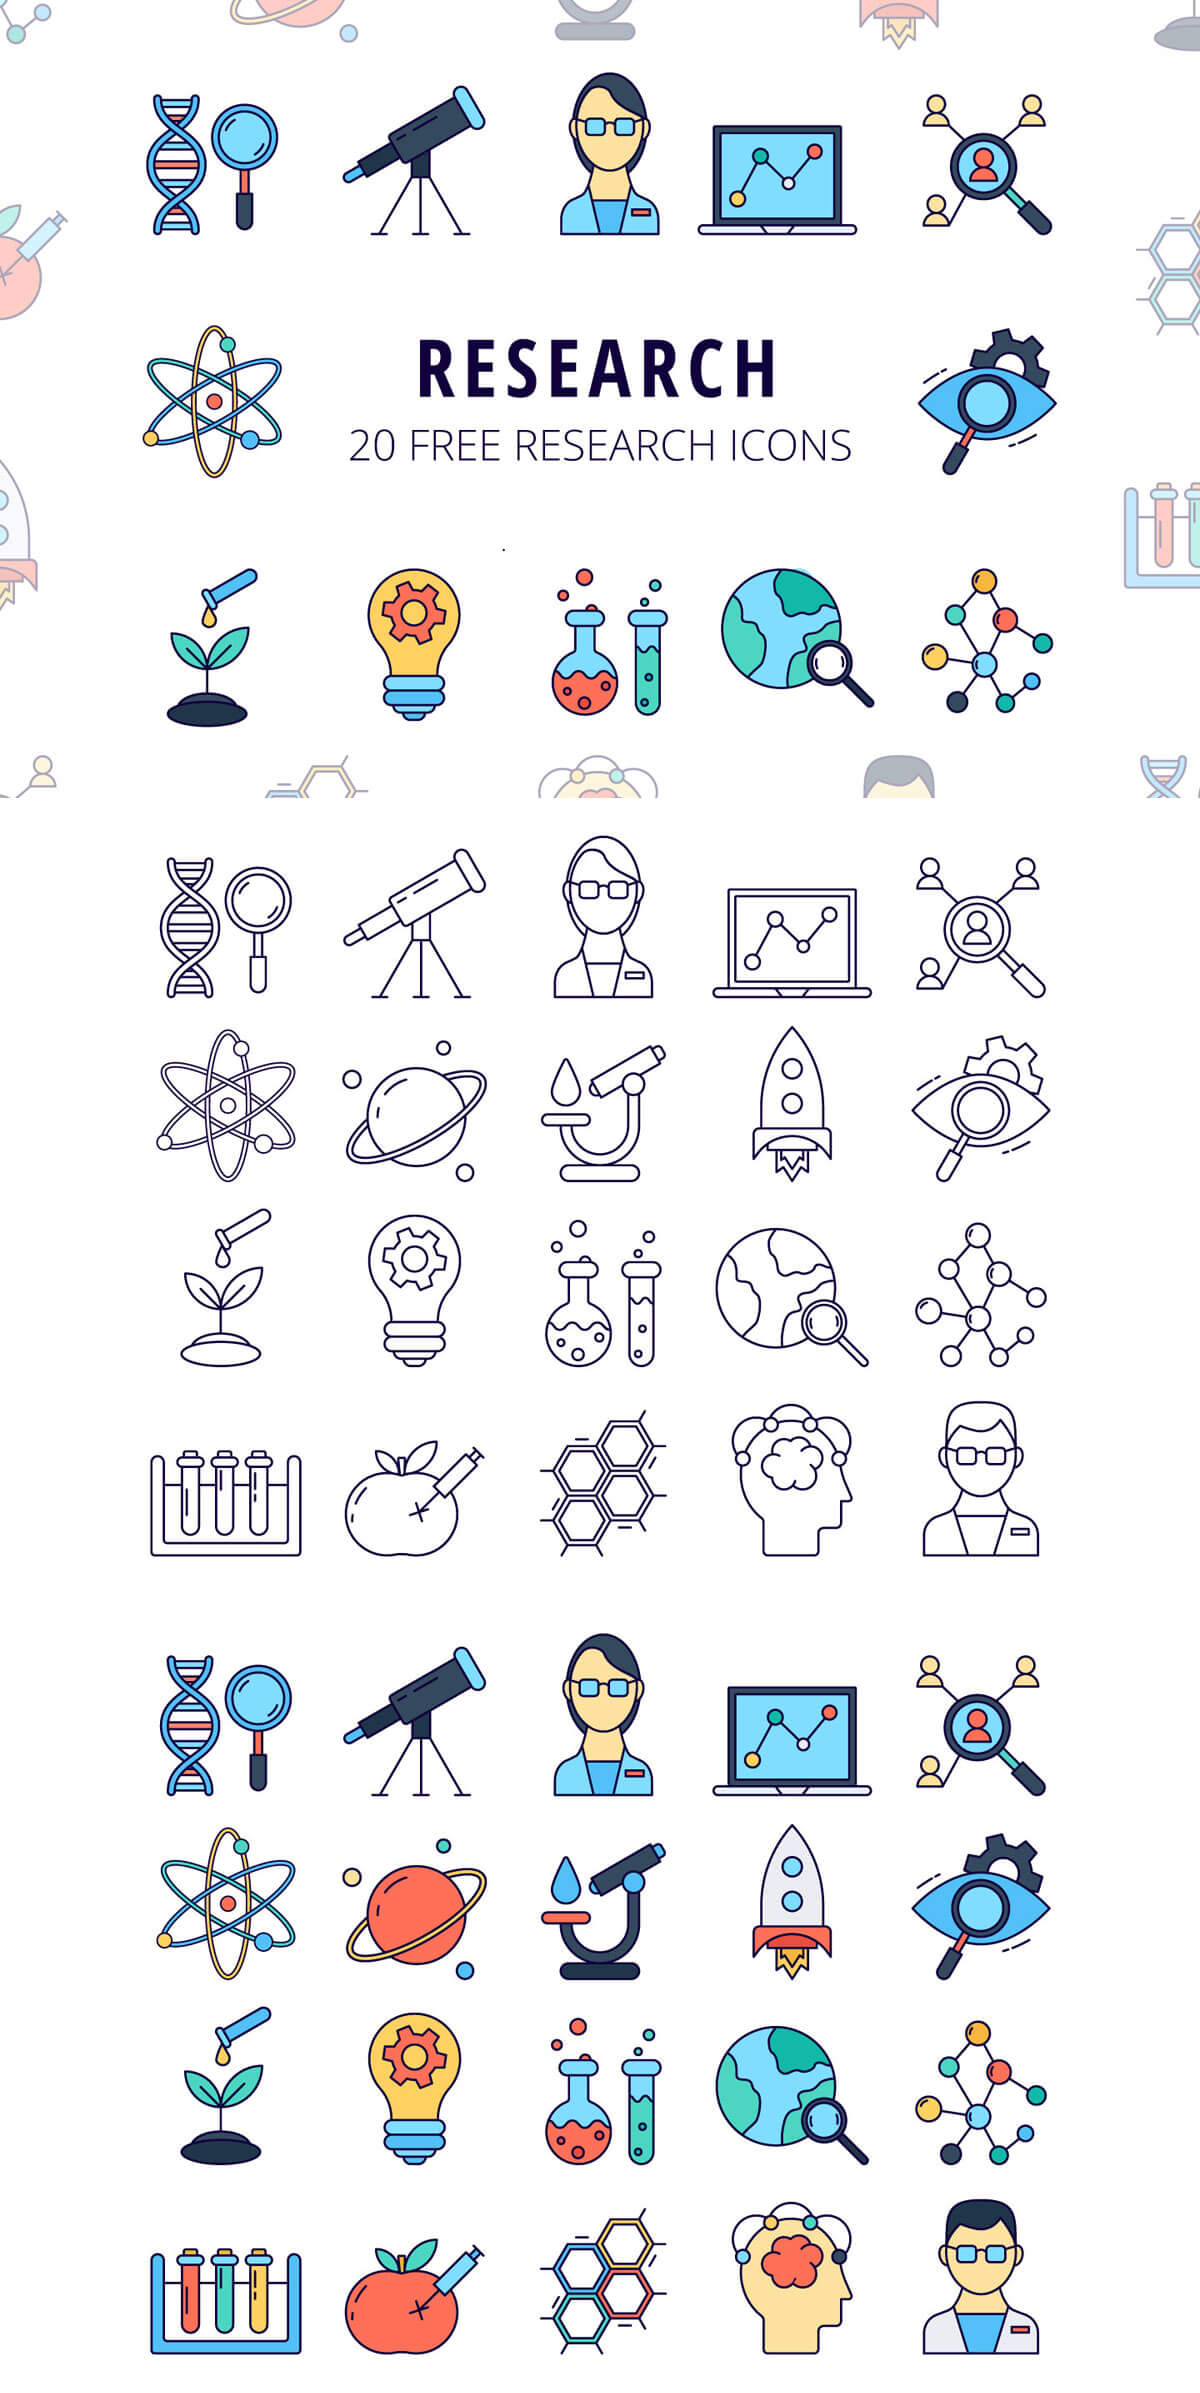 Free Research Vector Icon Set